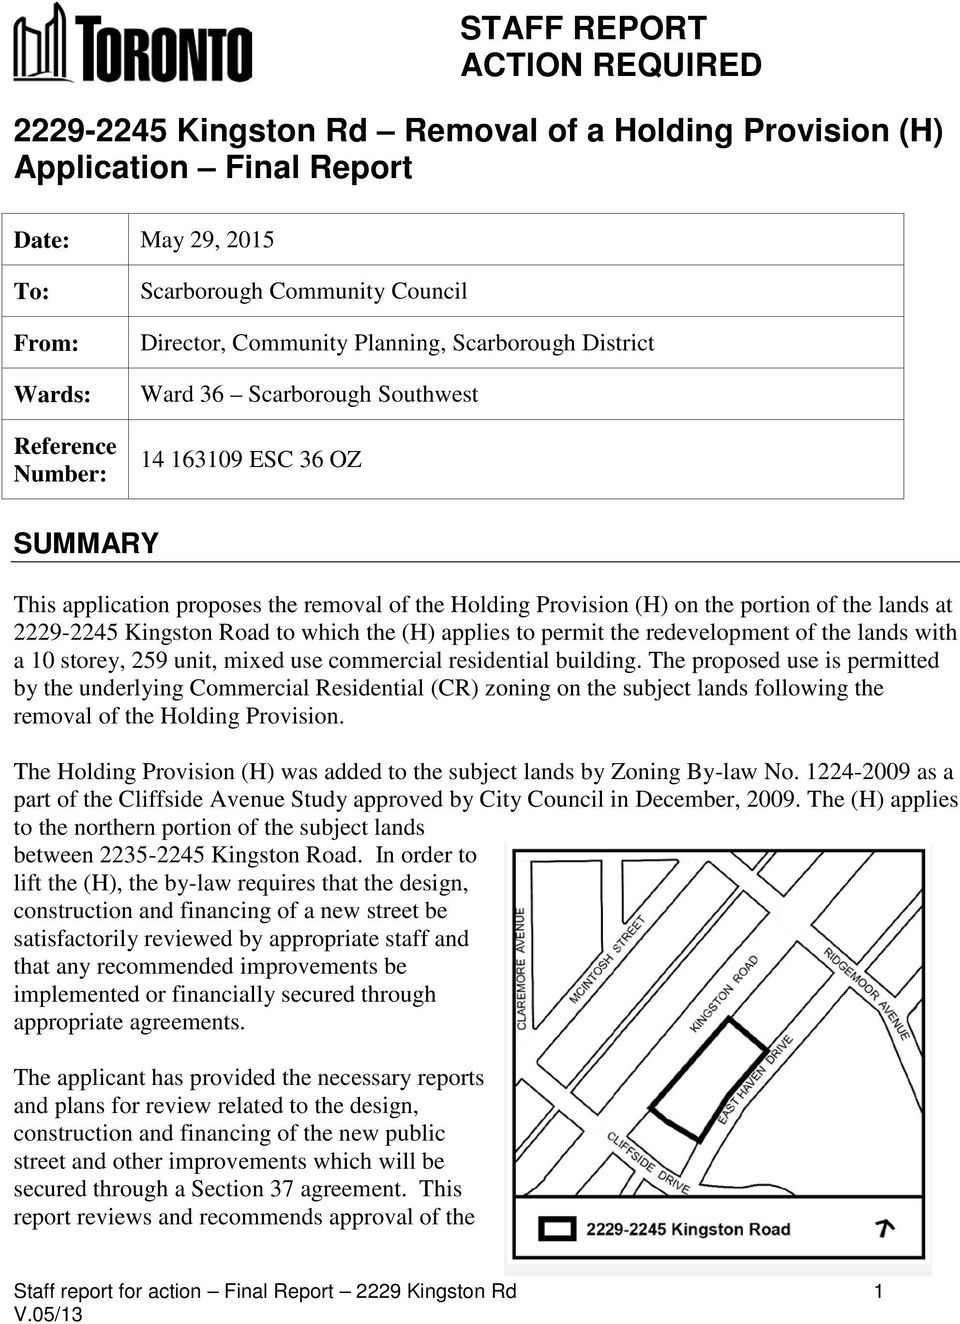 lands at 2229-2245 Kingston Road to which the (H) applies to permit the redevelopment of the lands with a 10 storey, 259 unit, mixed use commercial residential building.